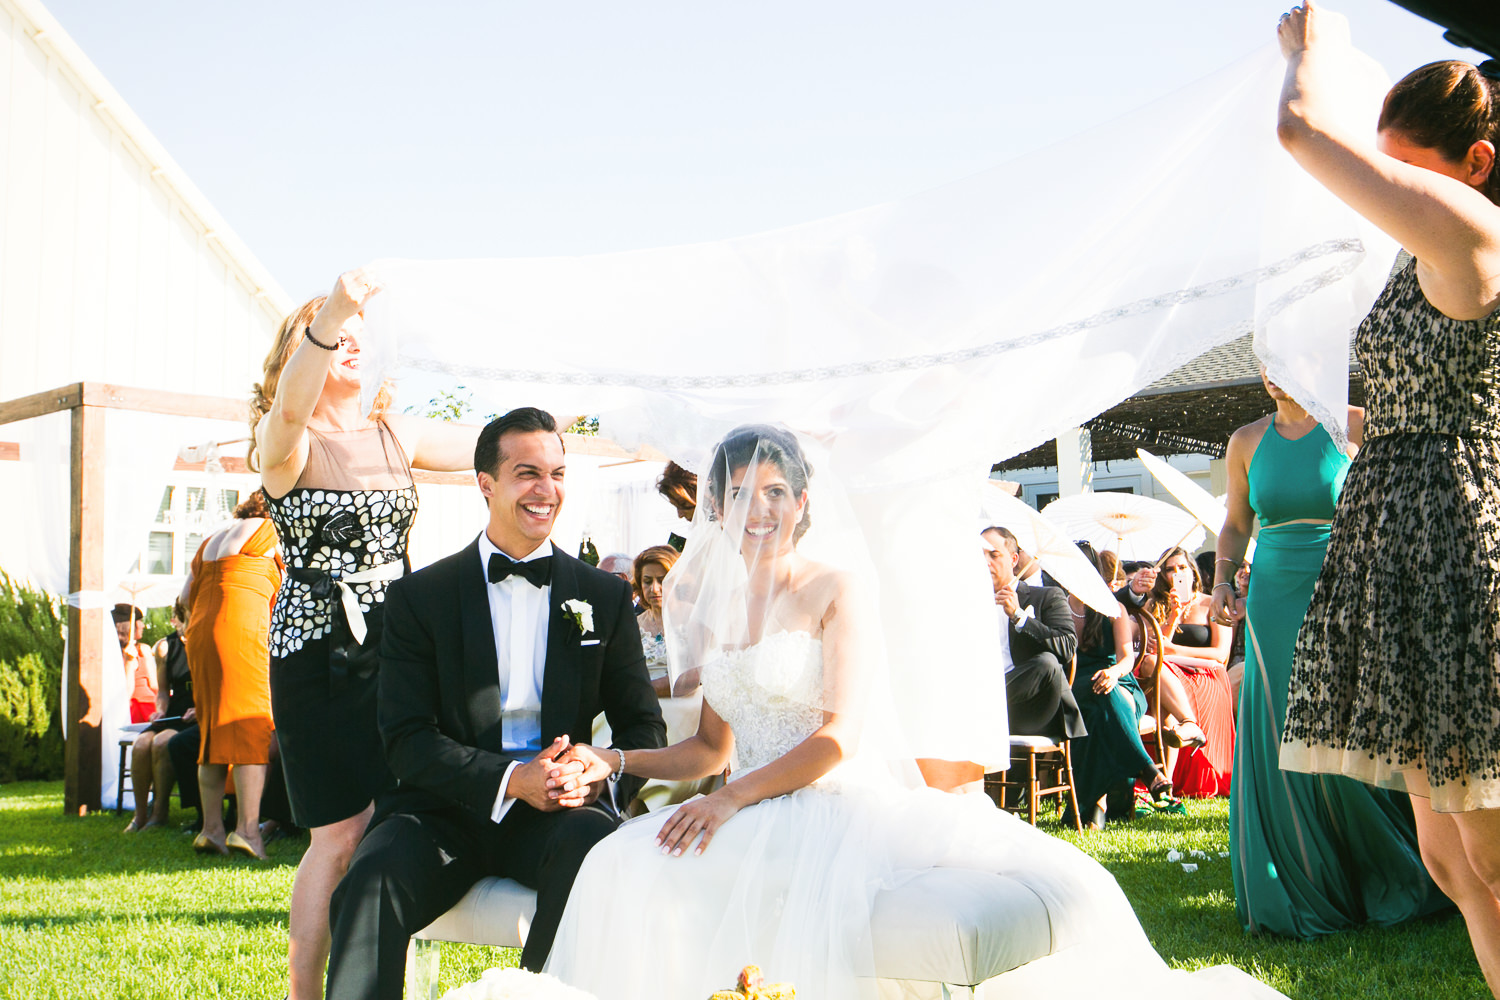 Persian wedding ceremony on the lawn at the Solage Resort in Calistoga, just outside of Napa